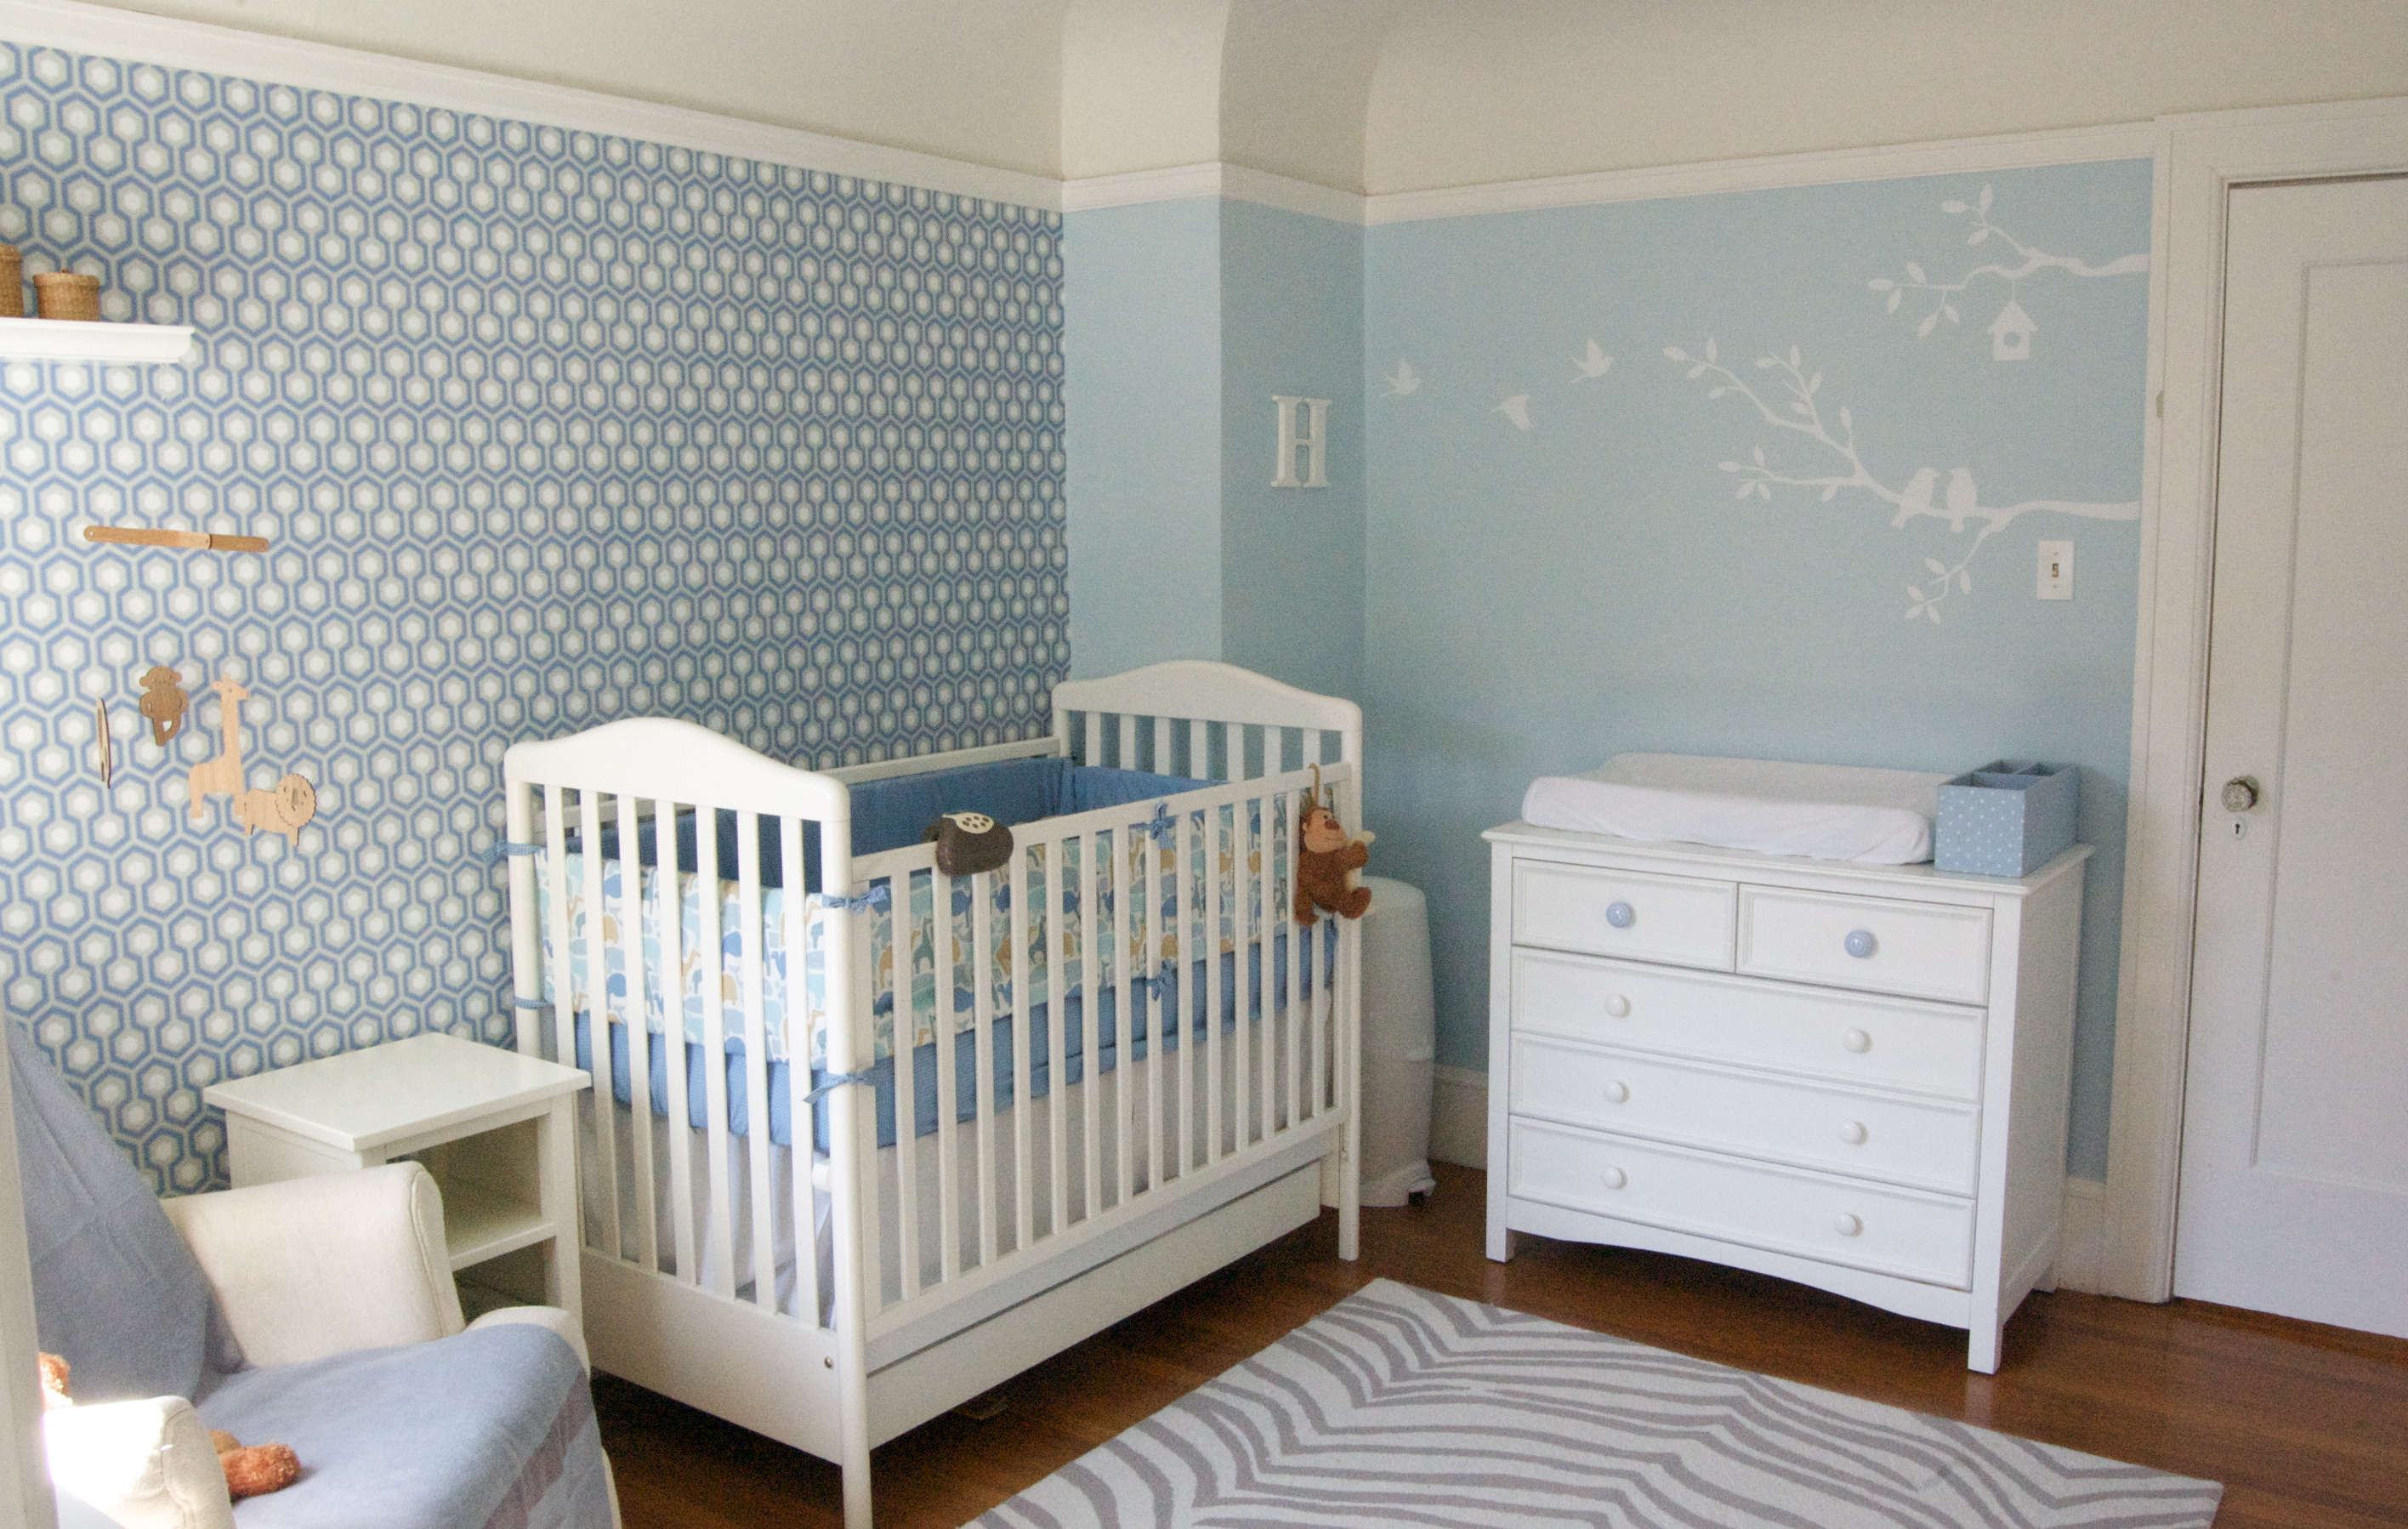 1000 images about baby room ideas on pinterest for Baby crib decoration